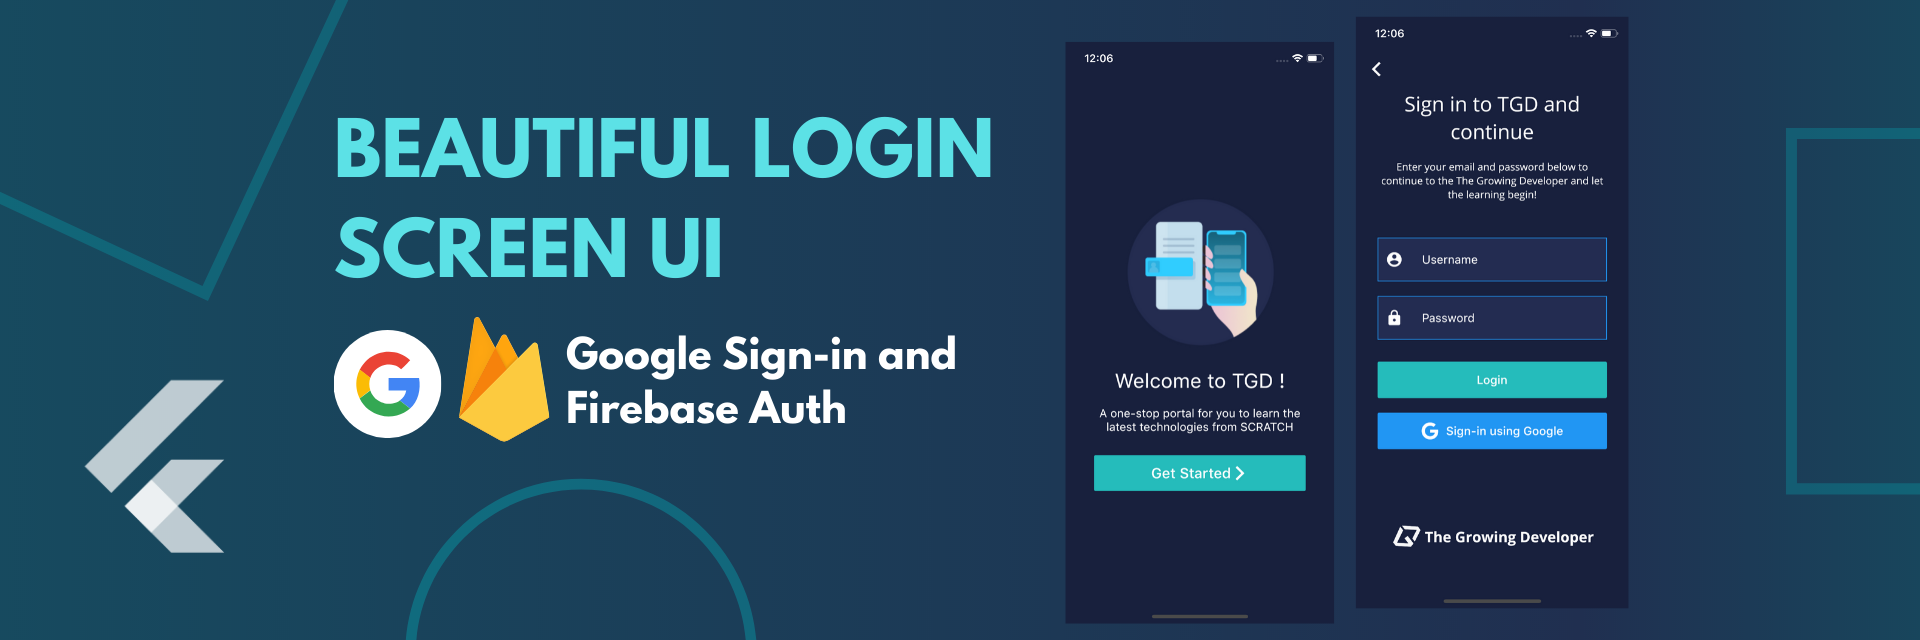 Flutter Tutorial - How to build Beautiful Login Screen with Google Sign - Part I